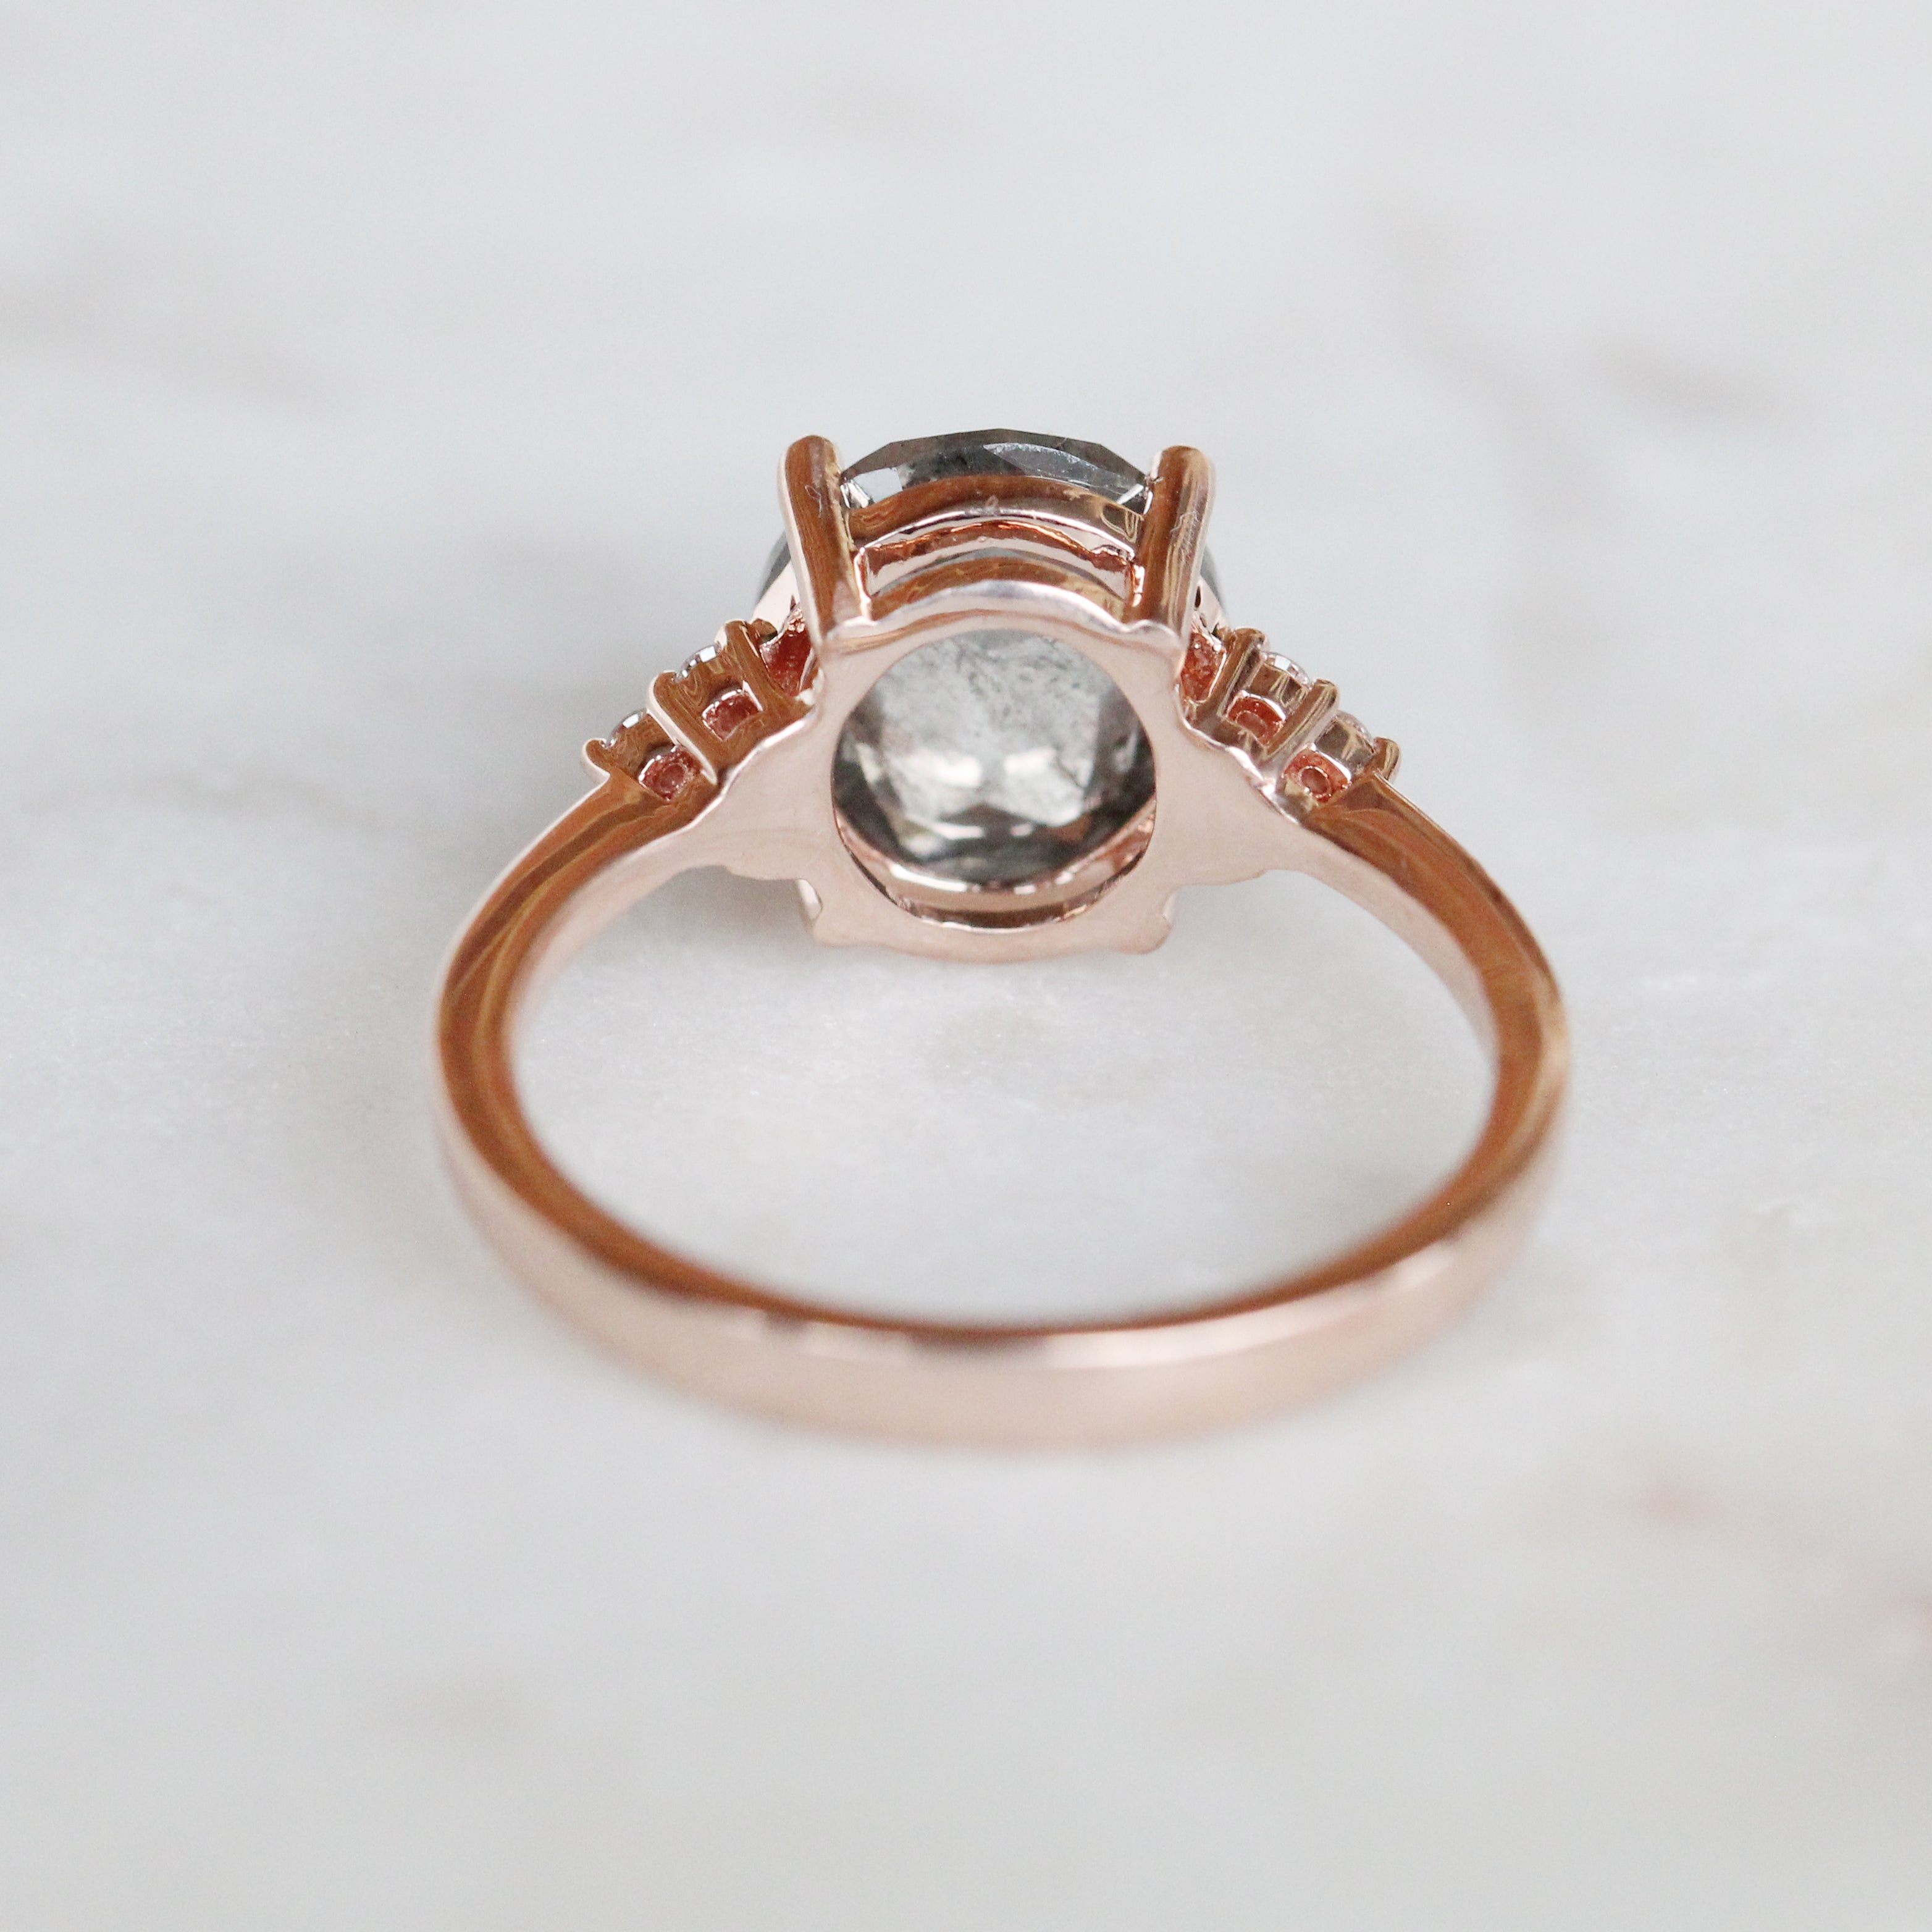 Imogene Ring with a 3.16 Carat Rose Cut Oval Celestial Diamond and Six 1.5mm Clear Accents in 10k Rose Gold - Ready to Size and Ship - Midwinter Co. Alternative Bridal Rings and Modern Fine Jewelry